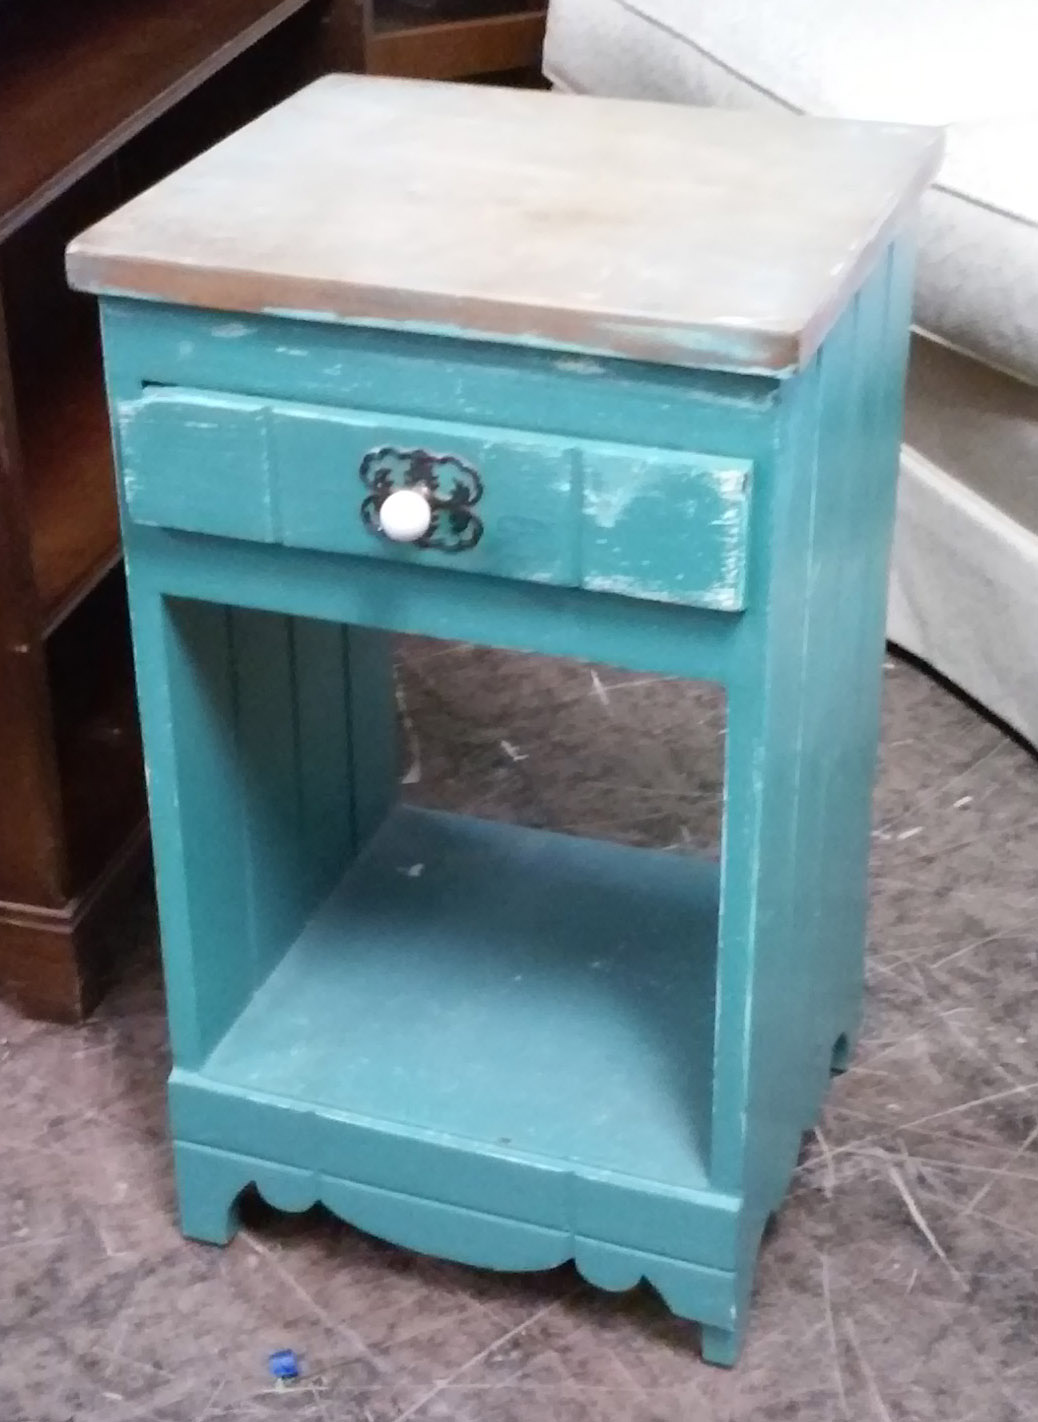 UHURU FURNITURE & COLLECTIBLES SOLD Shabby Chic Teal Nightstand $40